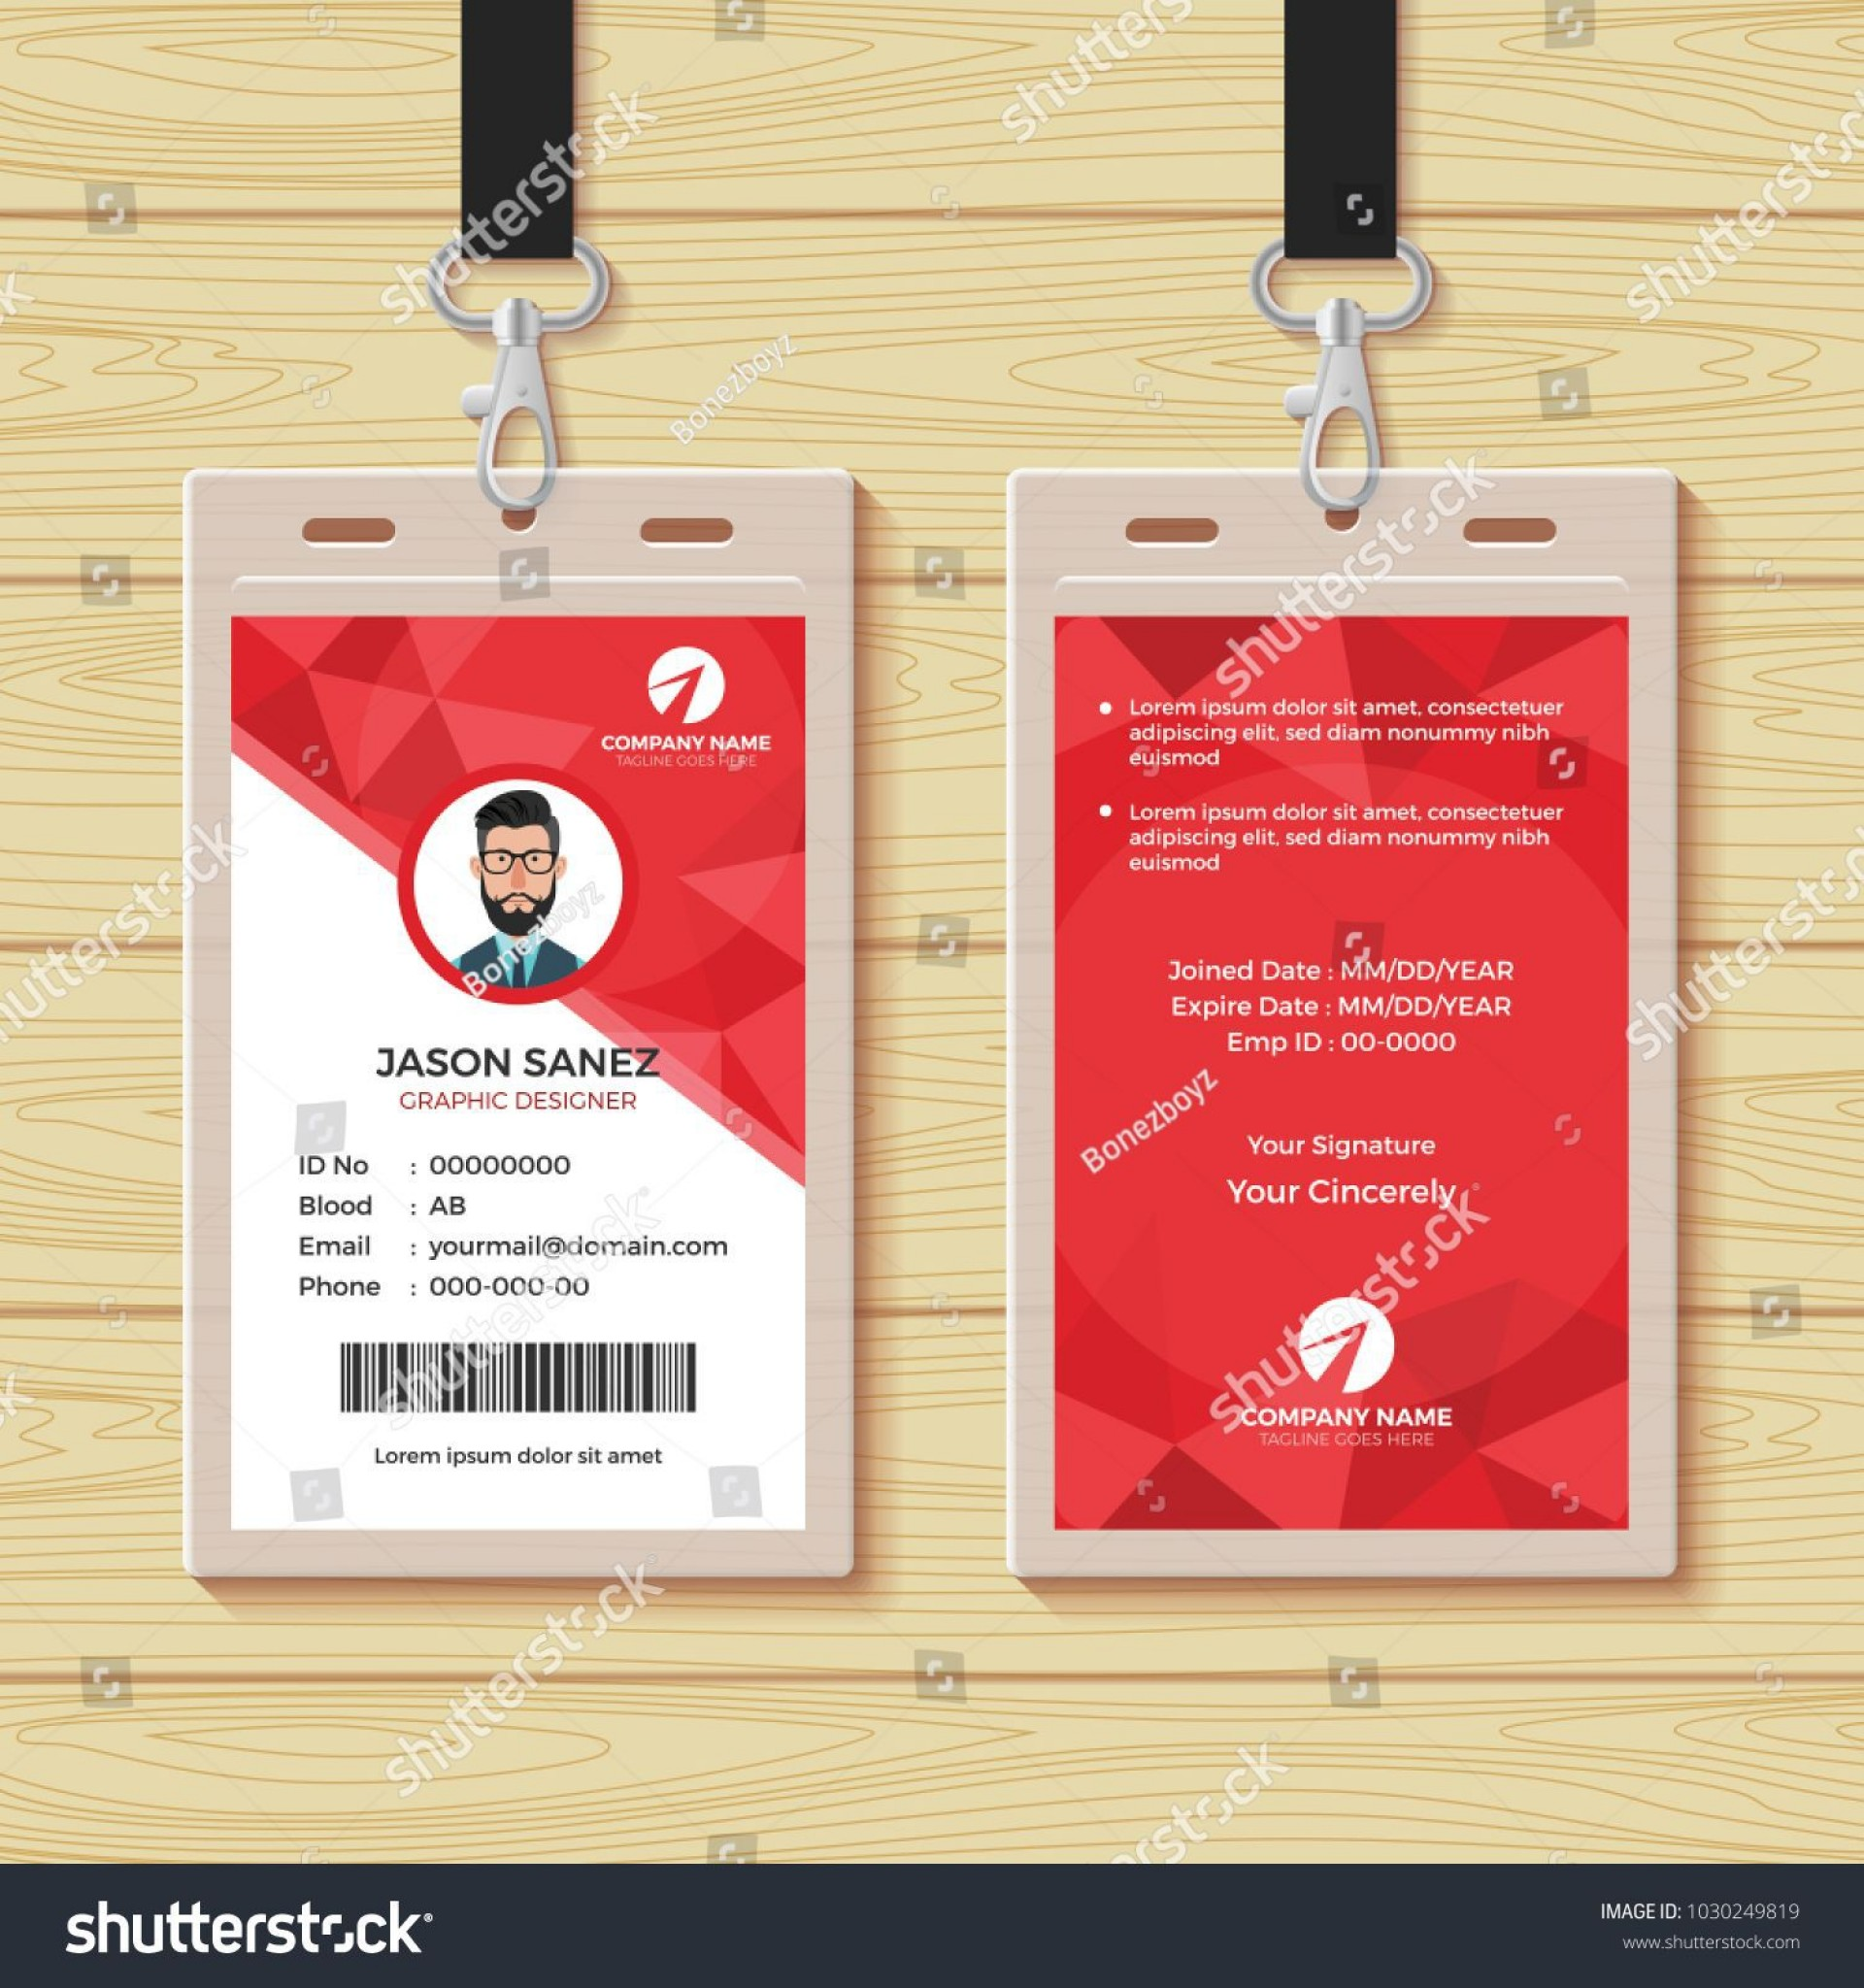 000 Impressive Employee Id Card Template High Def  Free Download Psd Word1920